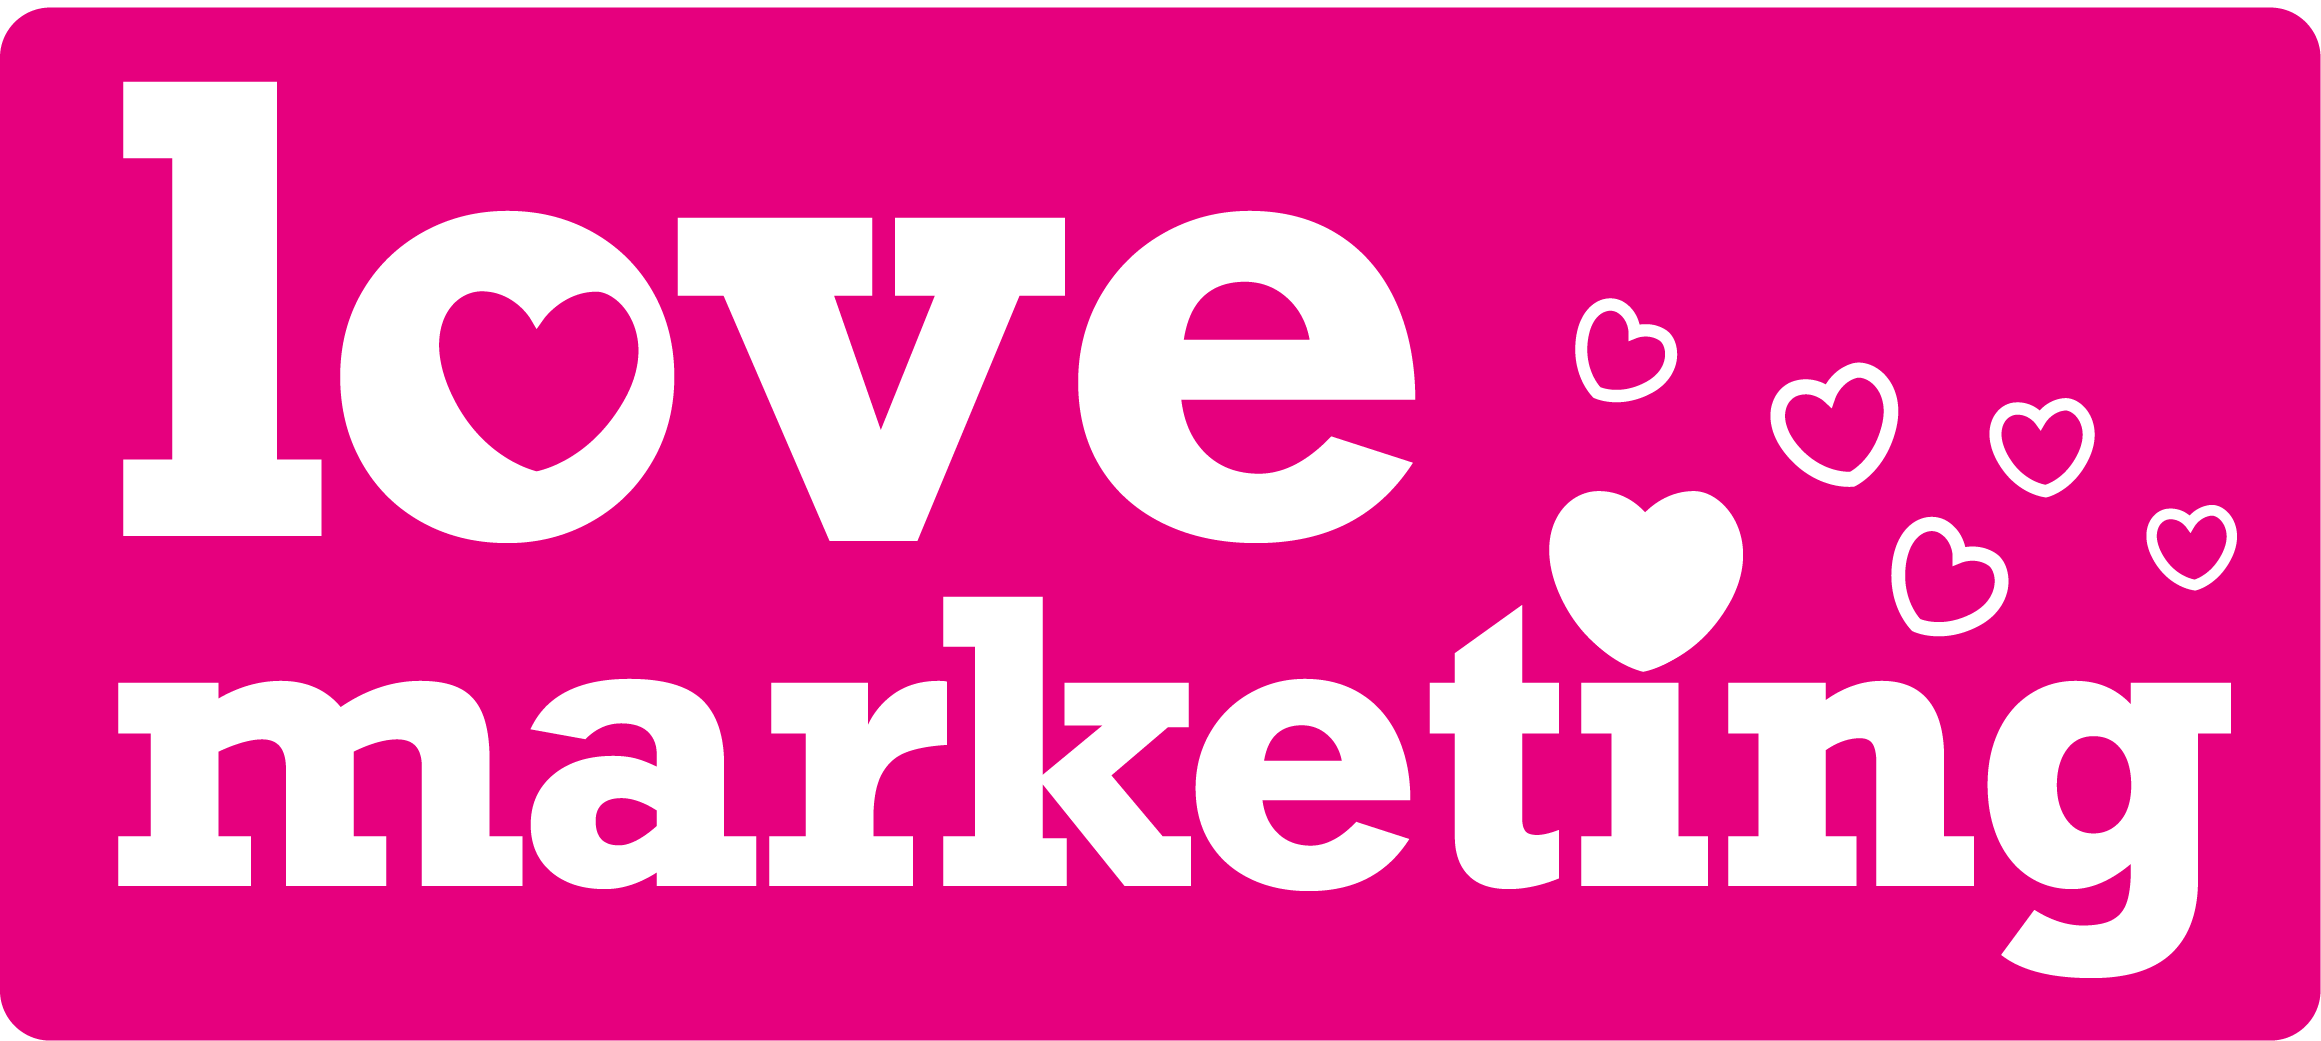 NEW Love Marketing Logo white on Pink backdrop.png